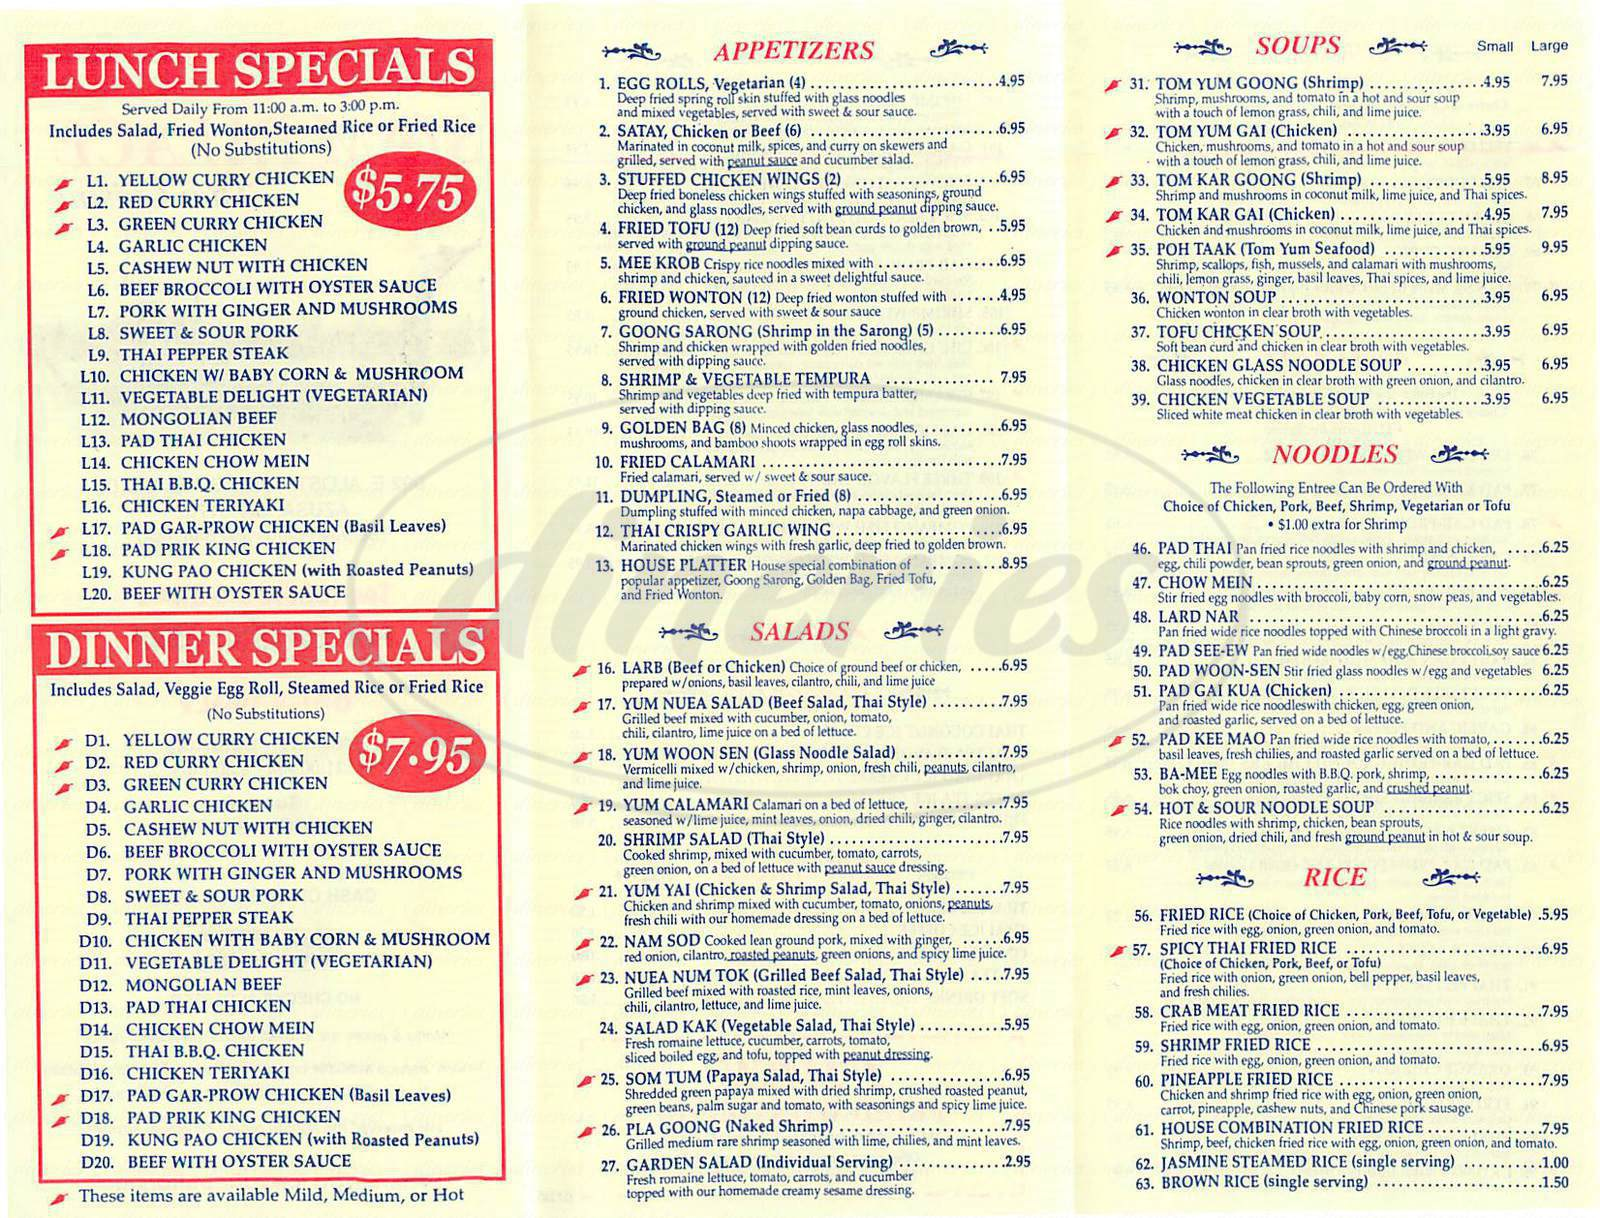 menu for Siam Palace Thai Cuisine